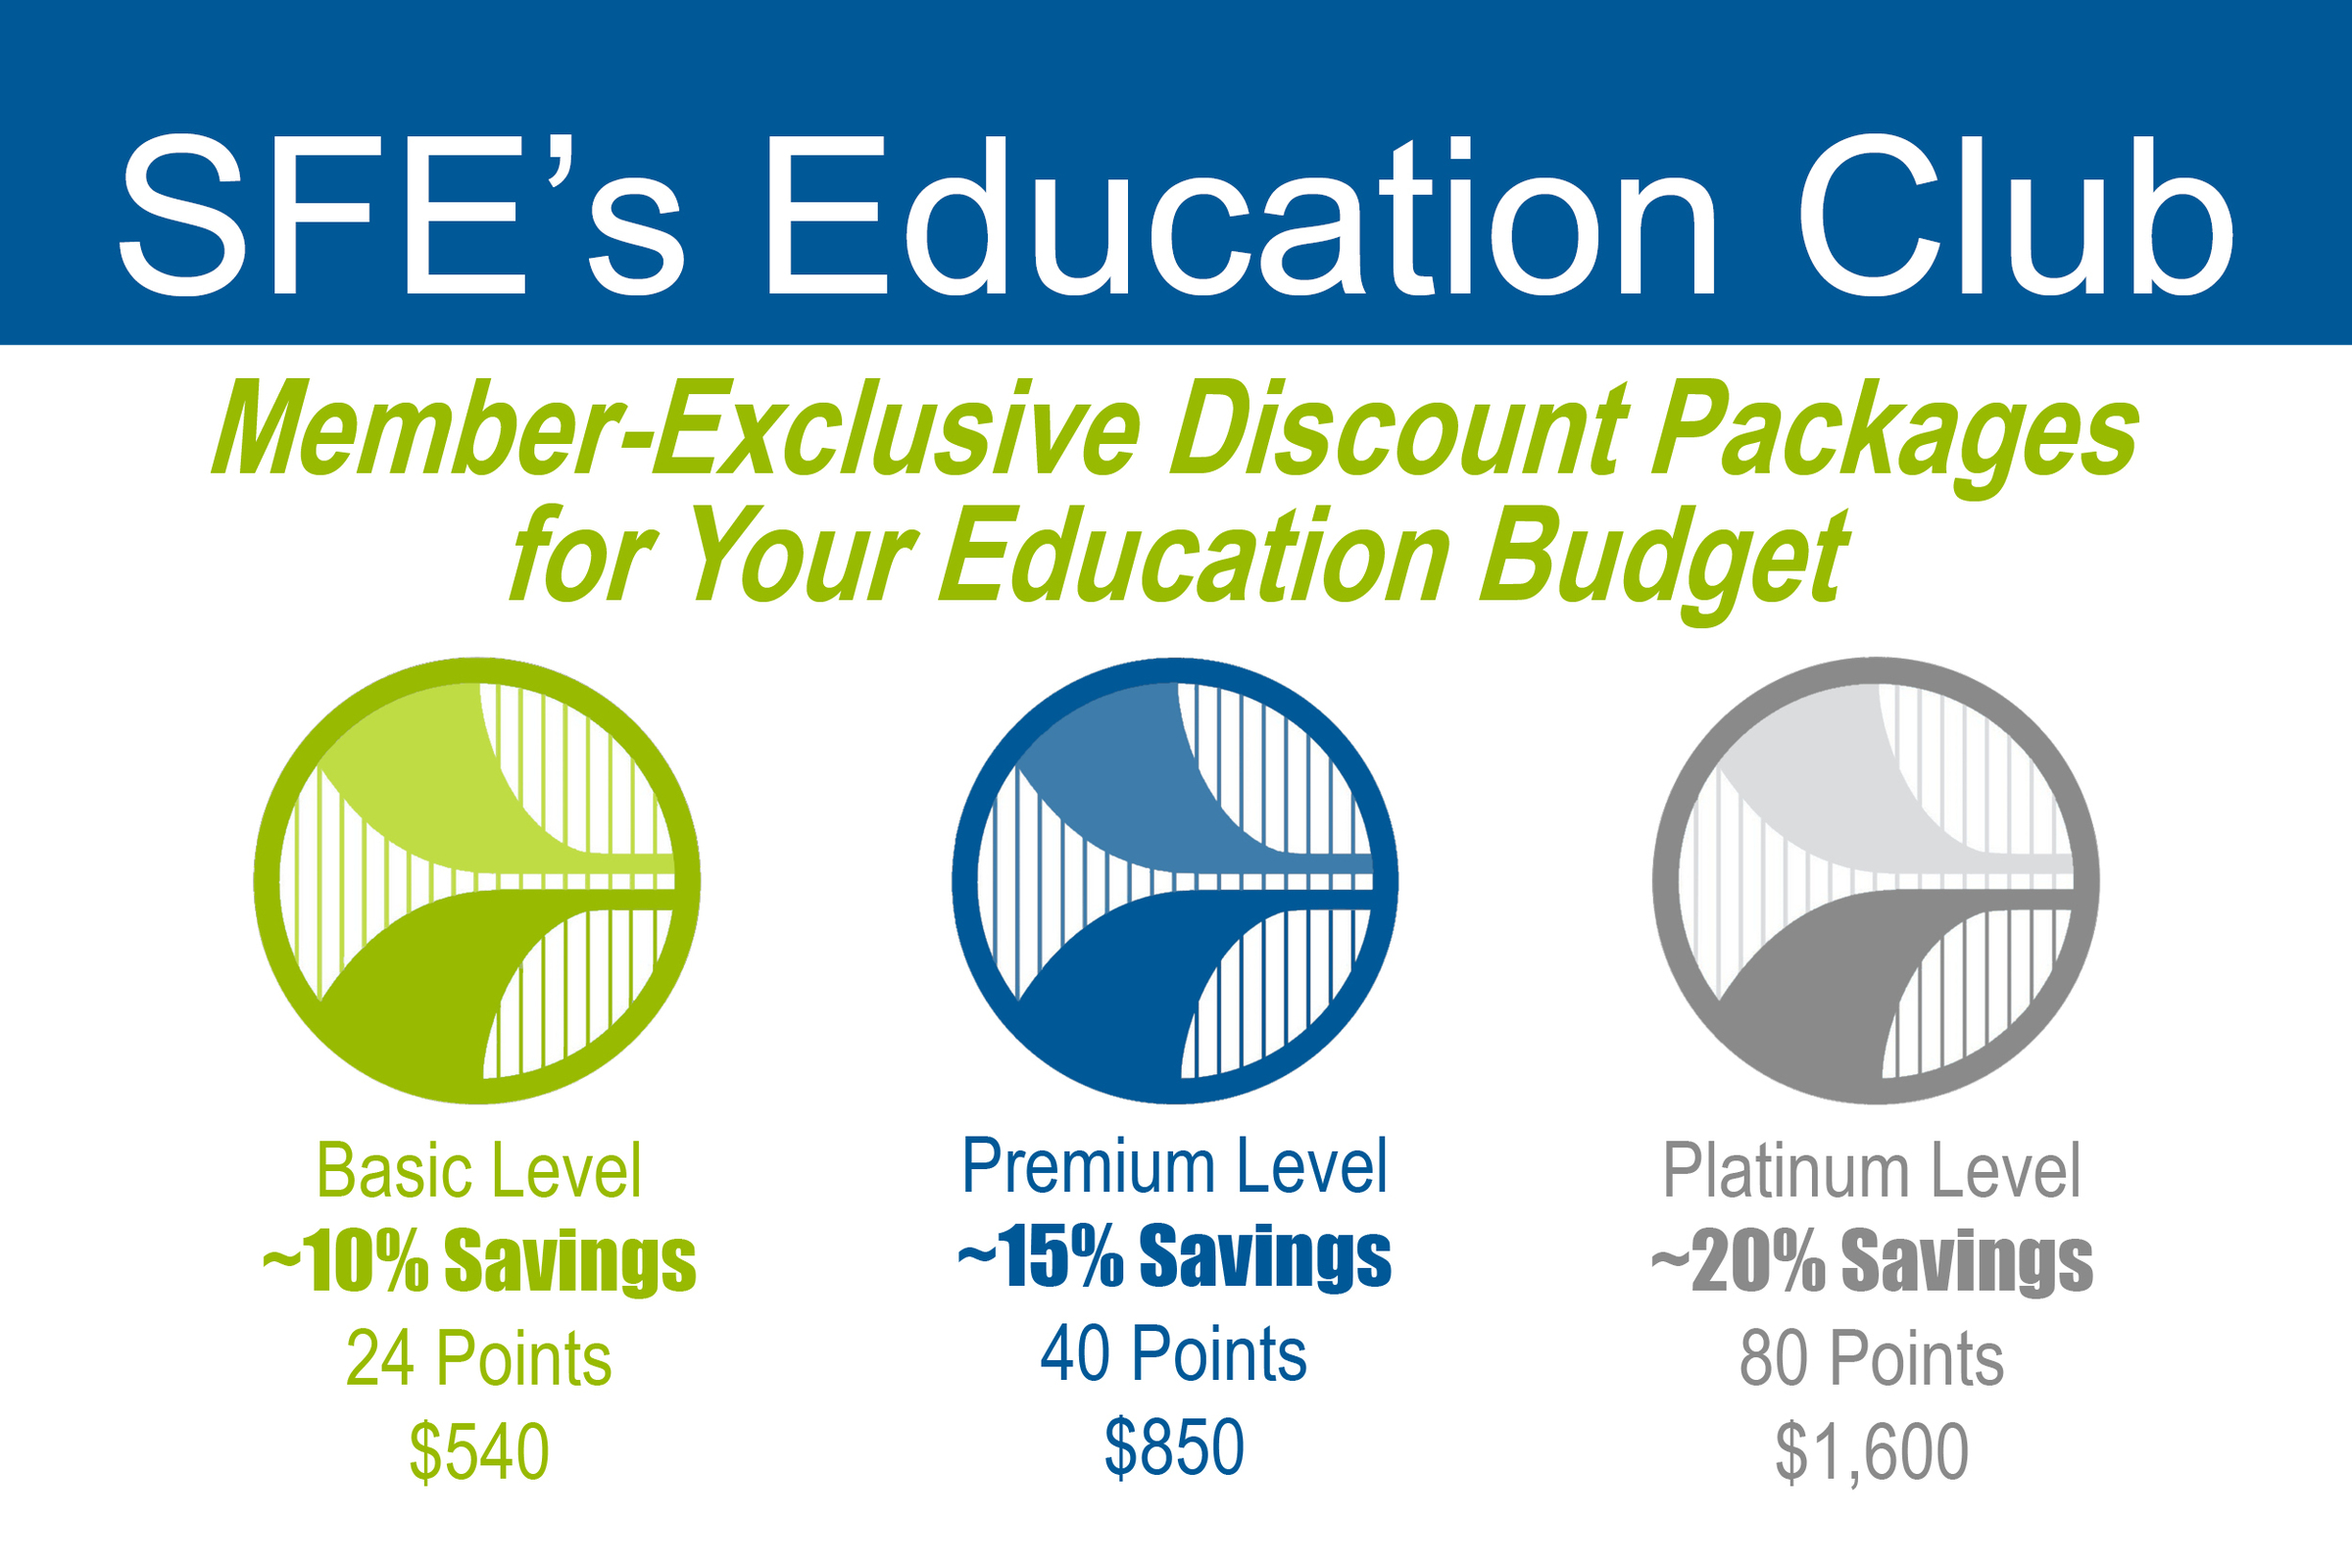 SFe Education Club Budget